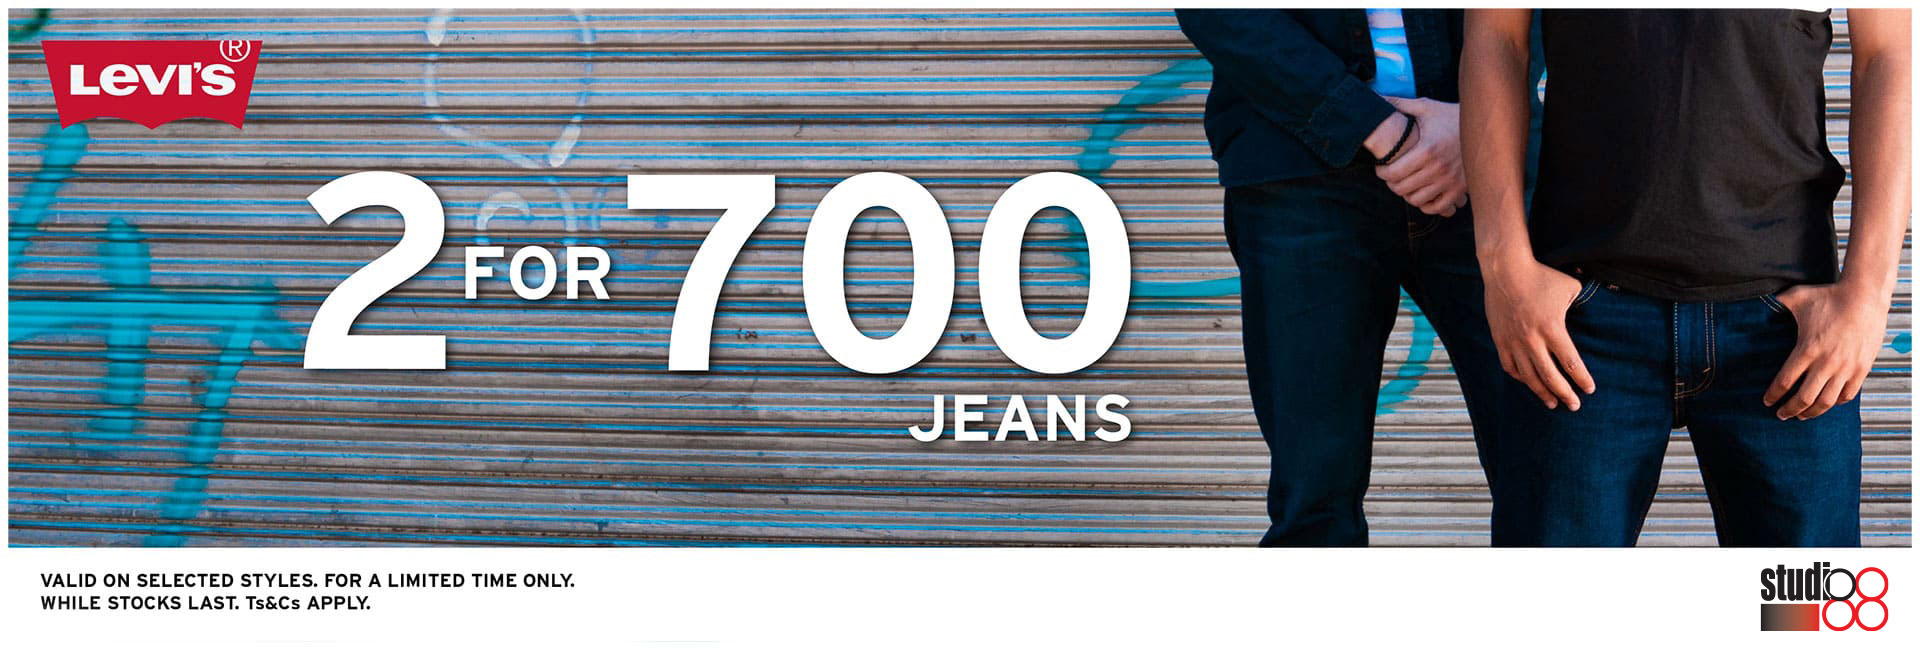 Levi's 2 for R700 Promo